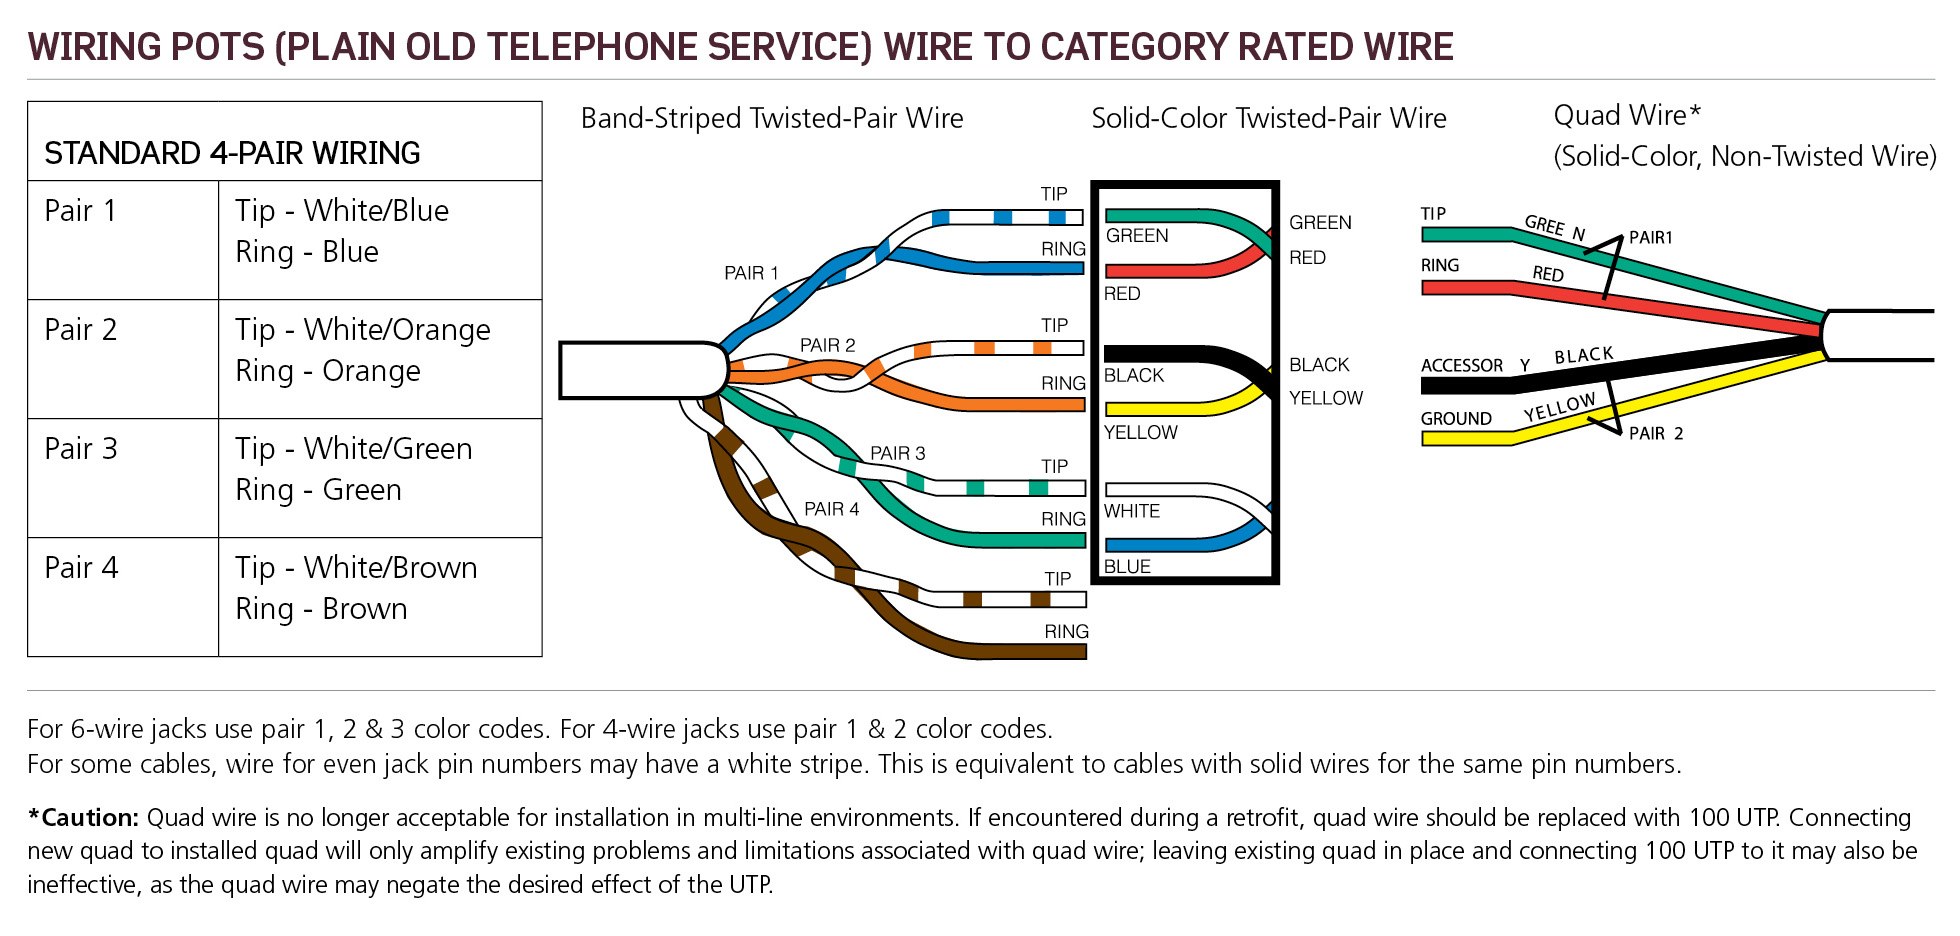 hight resolution of pots plain old telephone service wiring leviton made easy blog are you staring at some wire